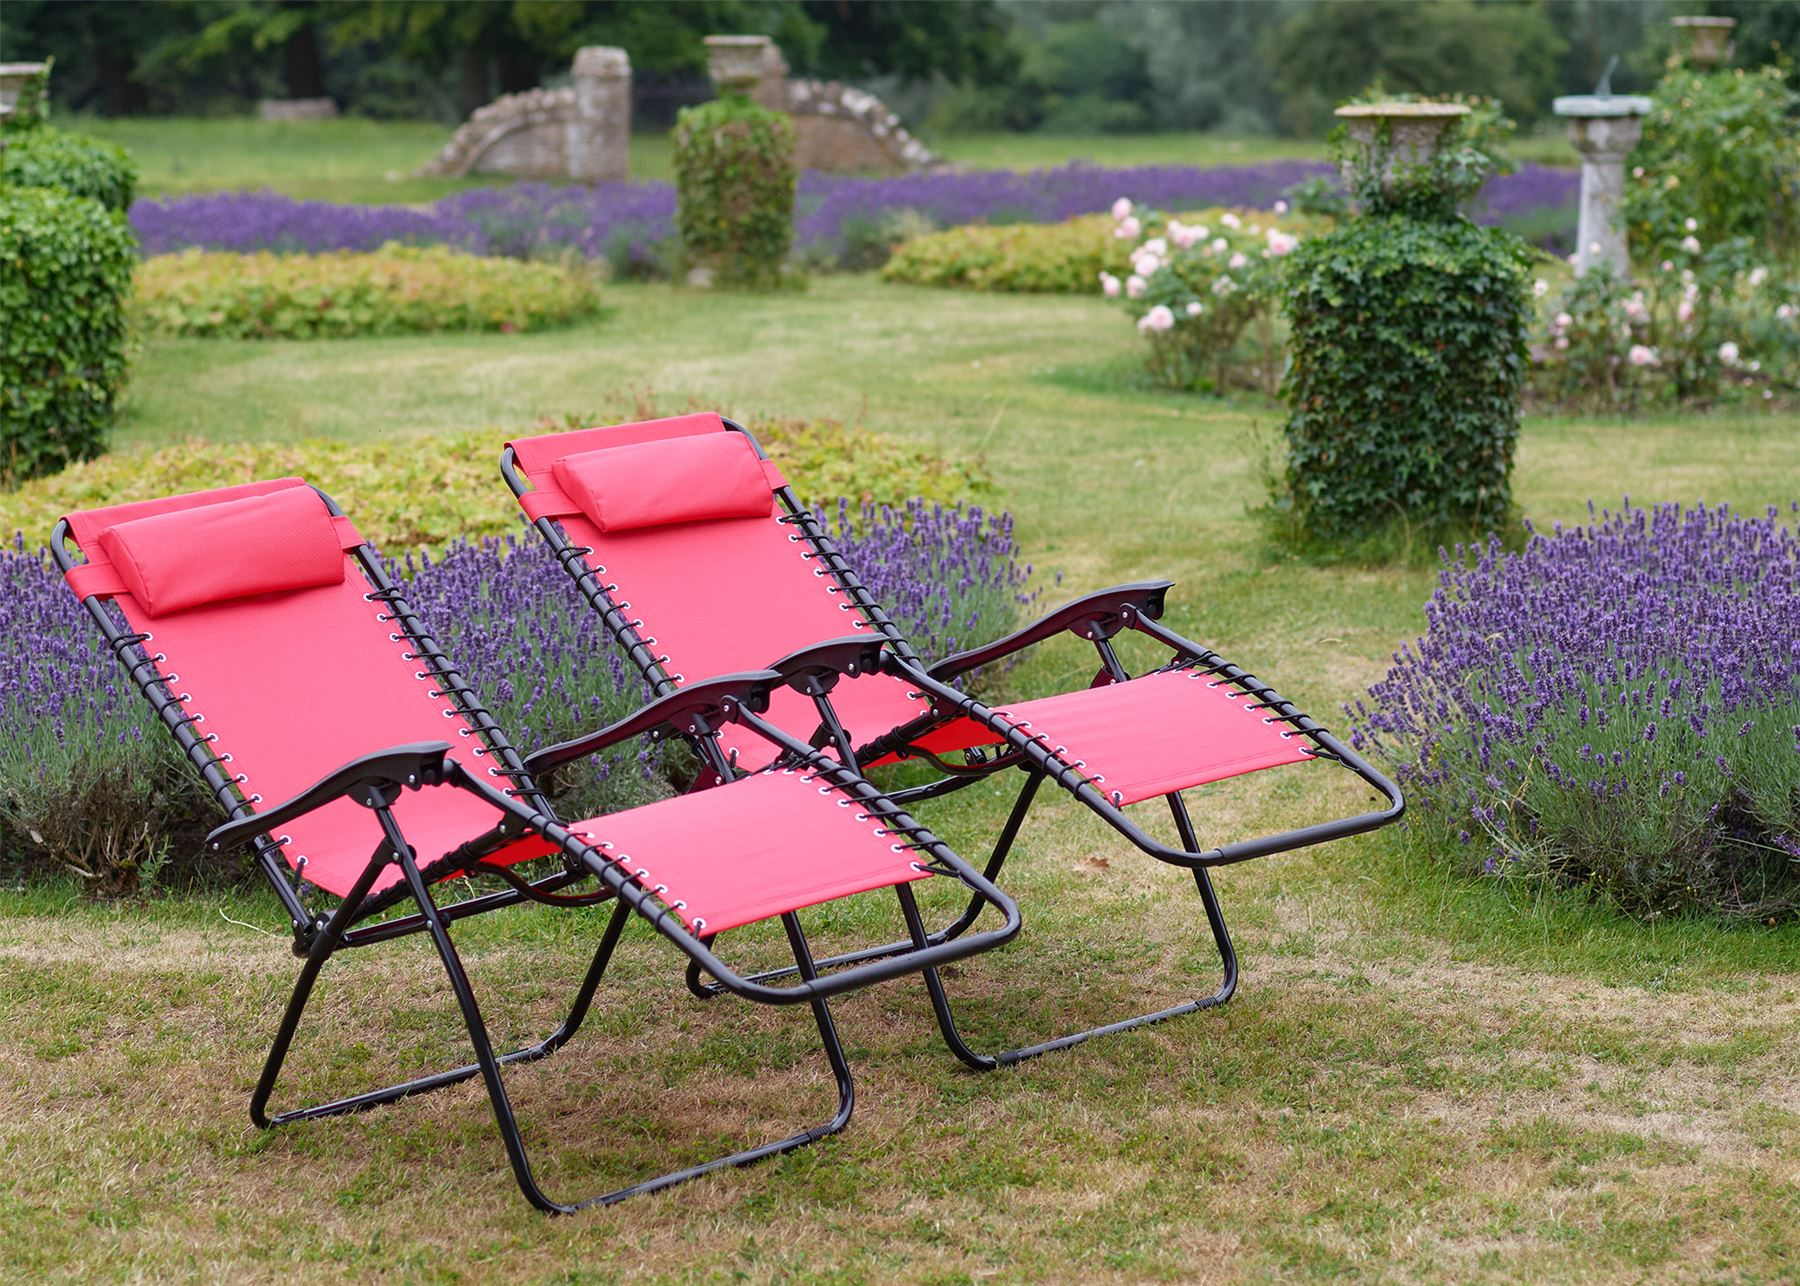 Set-of-2-Vinsani-Textoline-Gravity-Reclining-Garden- & Set of 2 - Vinsani Textoline Gravity Reclining Garden Chairs In ... islam-shia.org